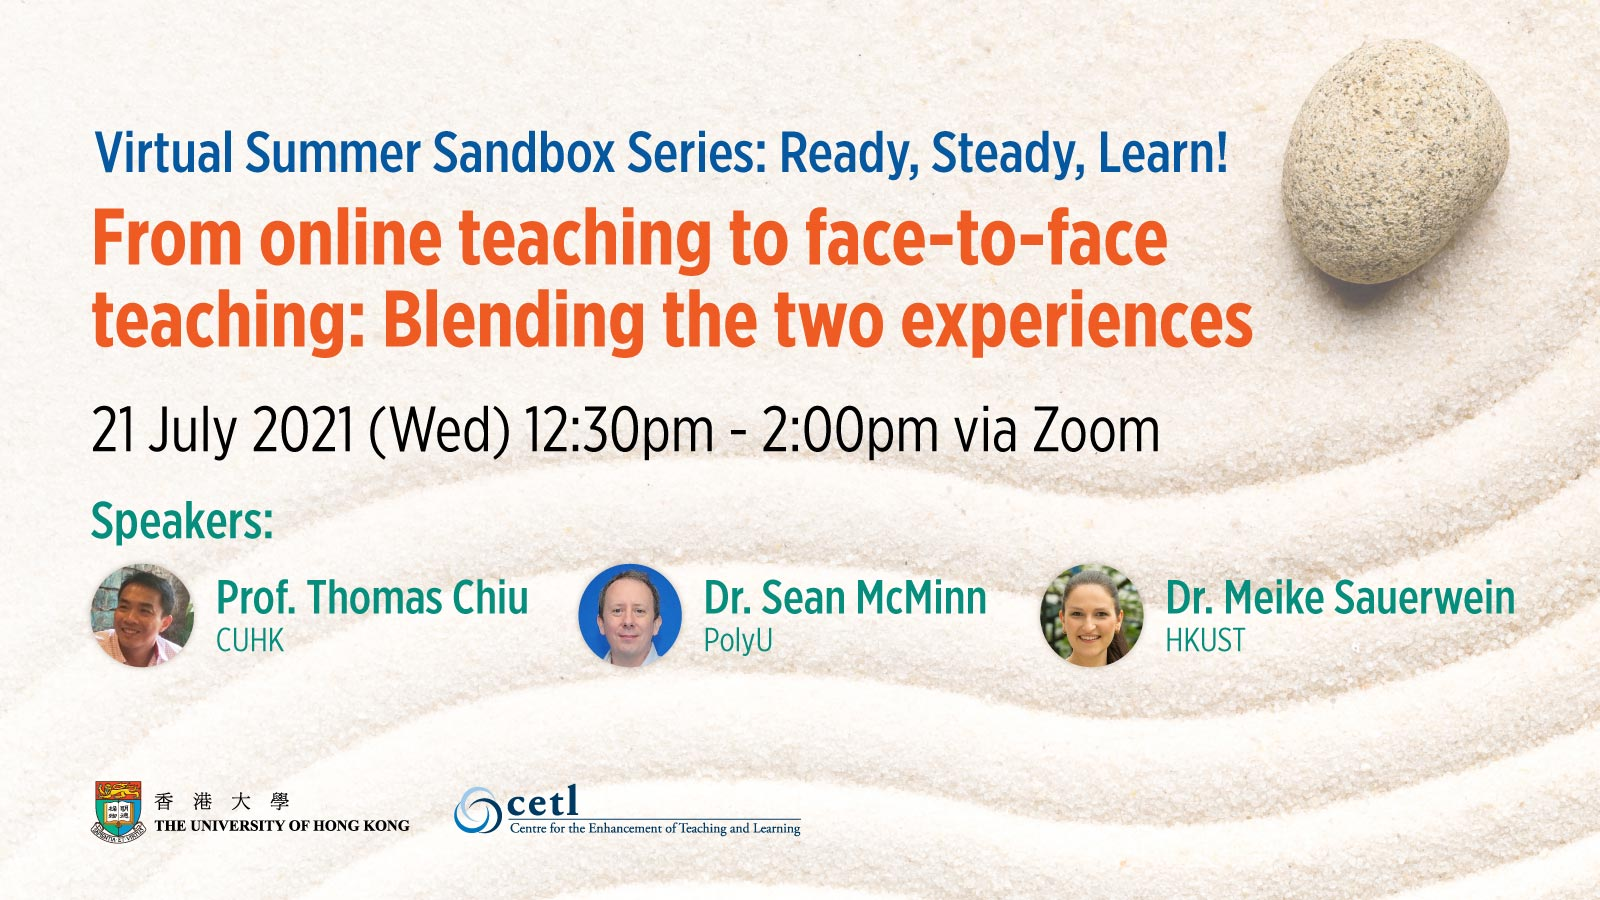 Session 1: From online teaching to face-to-face teaching: Blending the two experiences